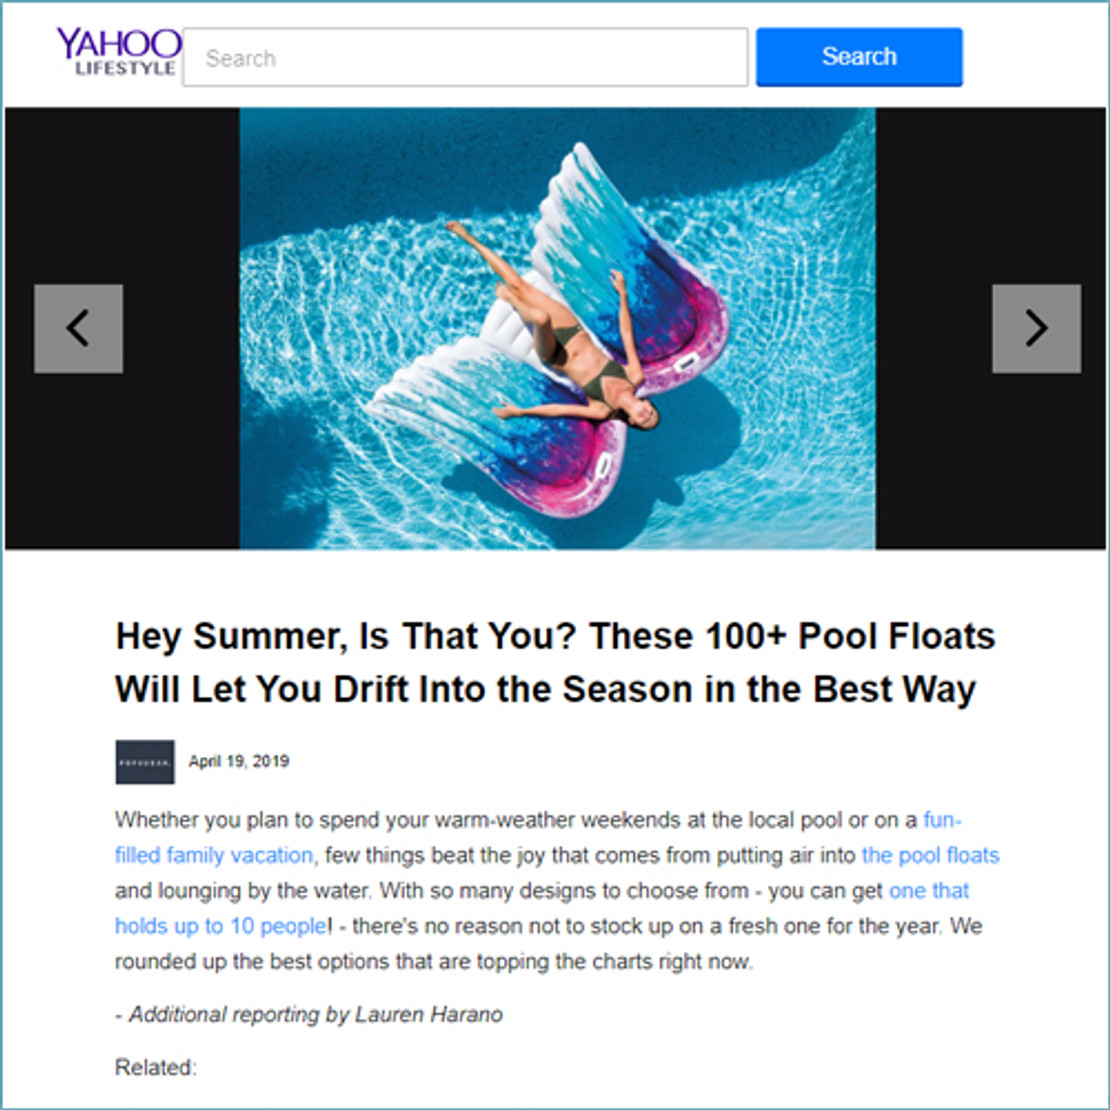 5/7/2019 - Intex Angel Wing Mat Ranks First on the Top 100 Pool Floats by Yahoo!